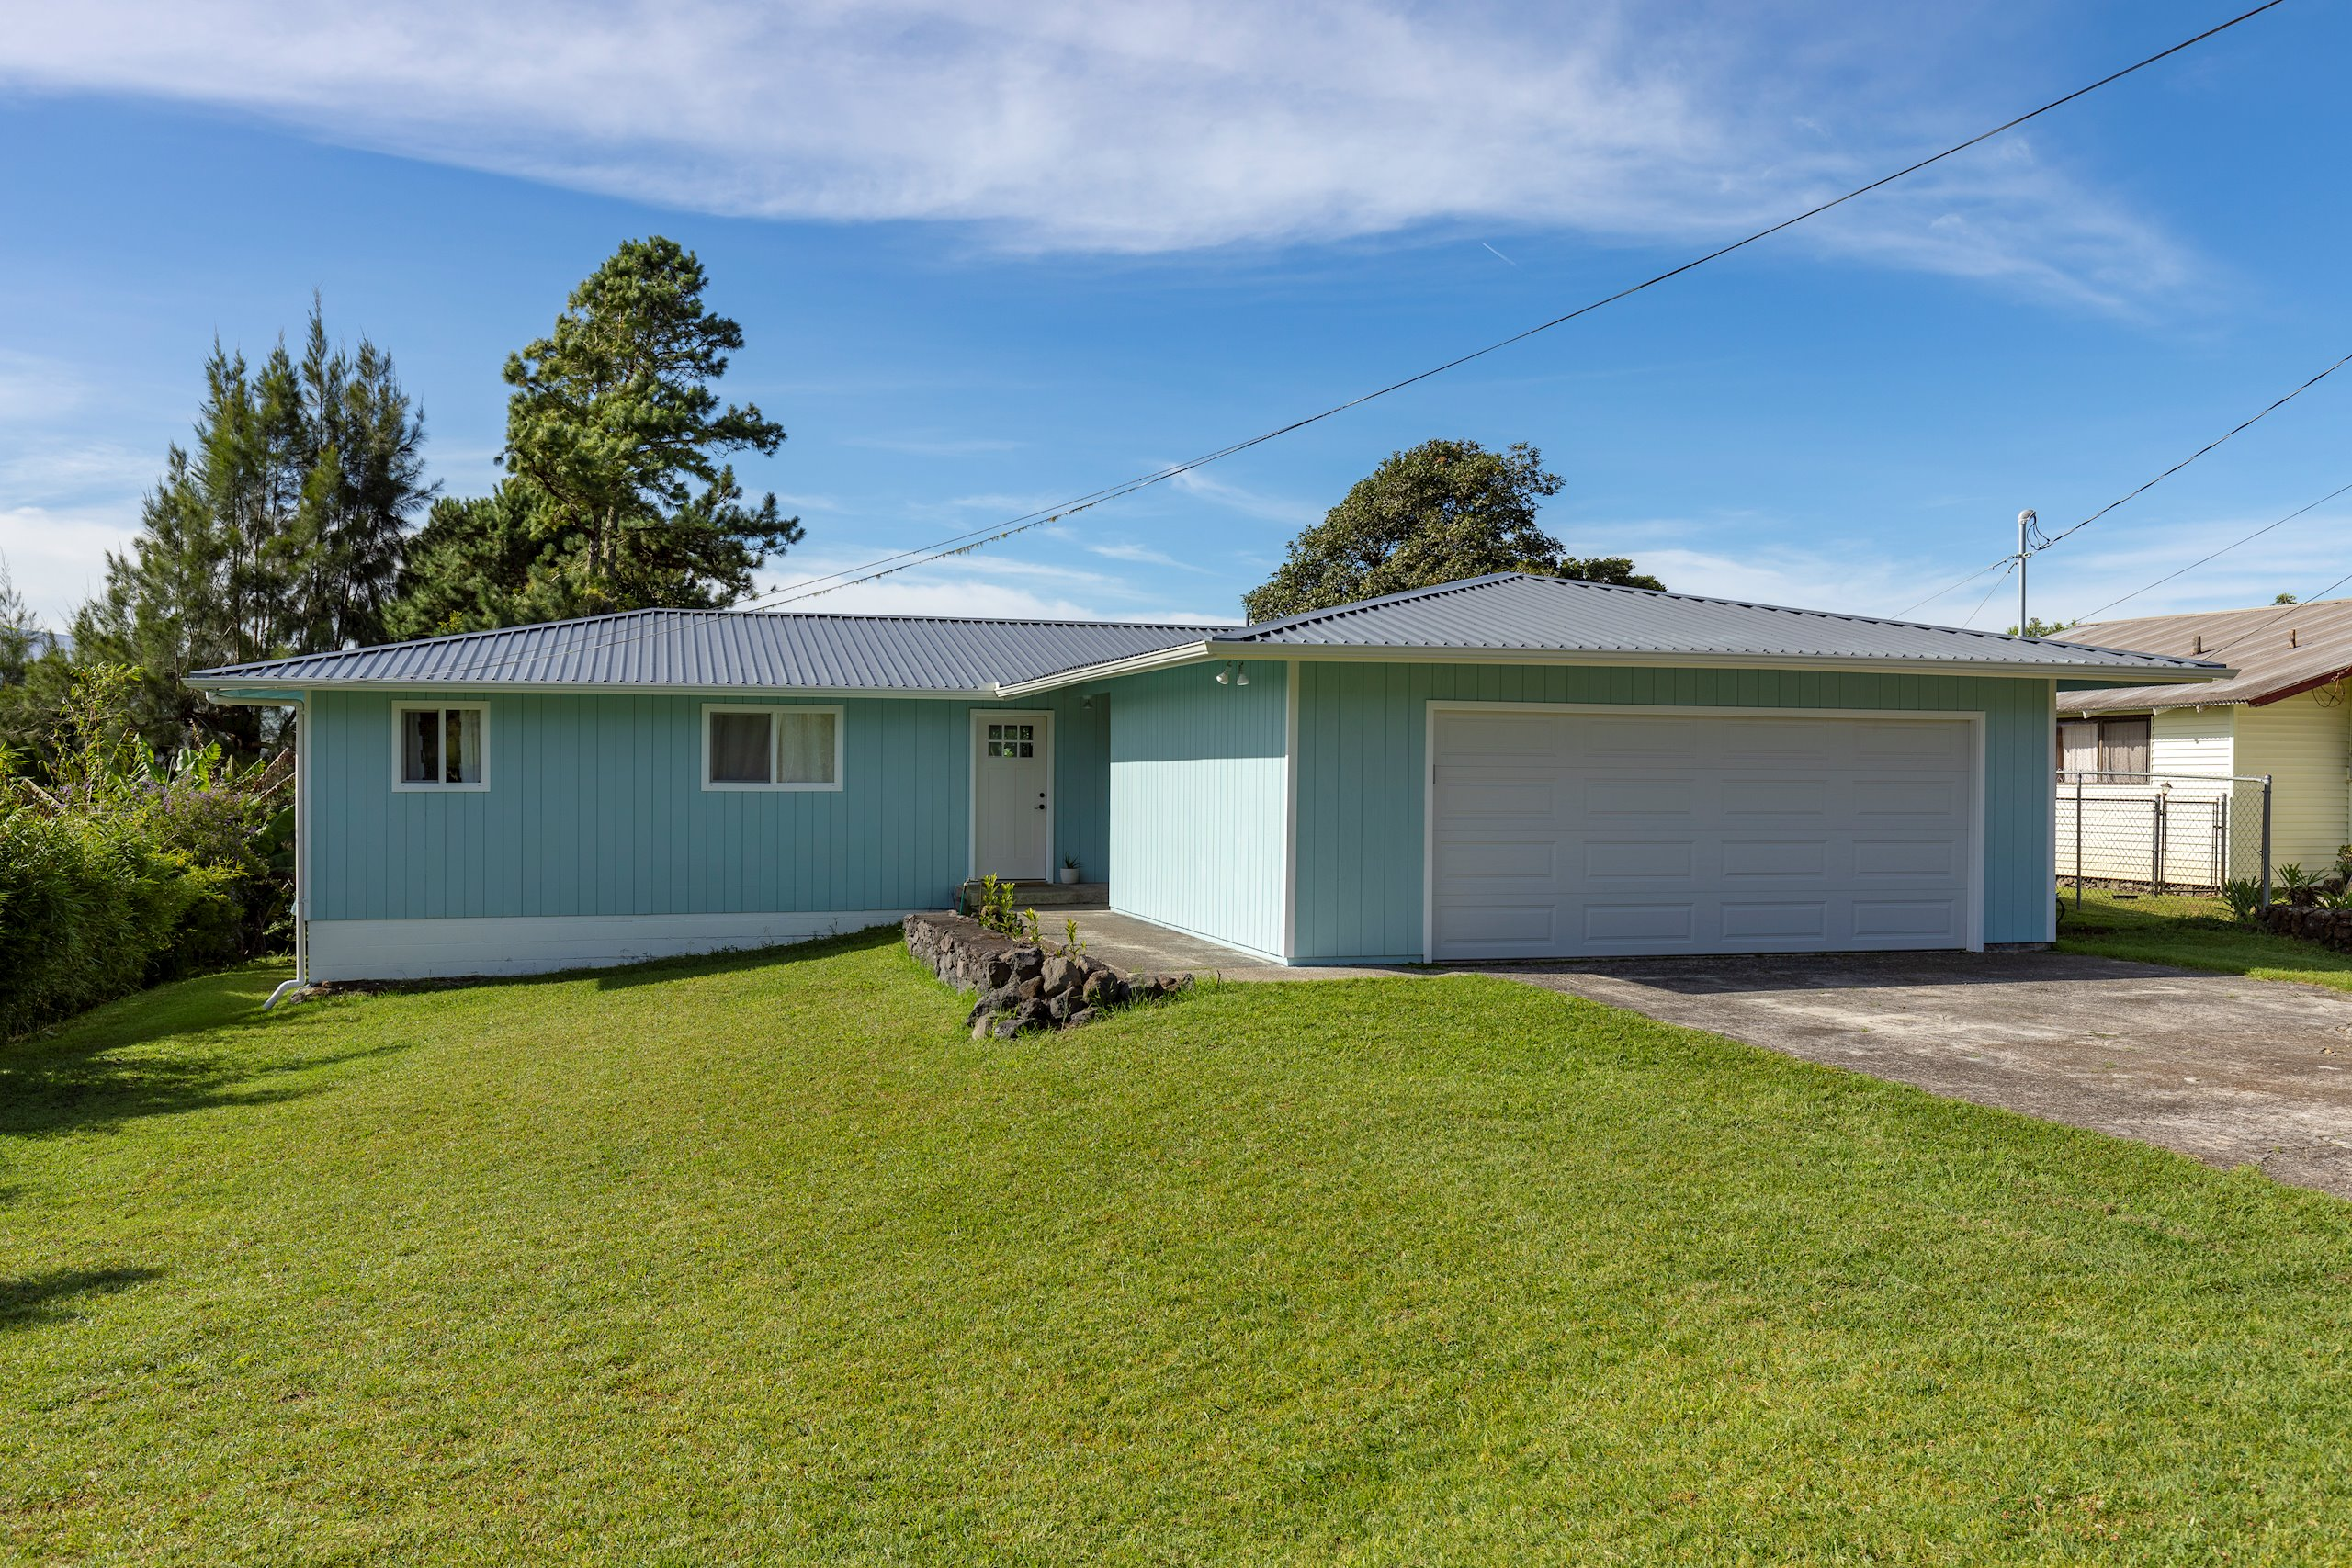 Conveniently located in Puu Nani, just 6 minutes from the heart of Waimea town, this stunning 3 bedroom / 2 bath has been recently remodeled! Updates include, but not limited to:<br>- New roof<br>- New paint inside and out<br>- All new flooring throughout<br>- Beautiful new T&G ceiling throughout<br>- Both bathrooms gutted and redone<br>- All new kitchen (cabinets, counter top, sink, appliances, etc.)<br>- Lanai has been rebuilt<br>- New water heater